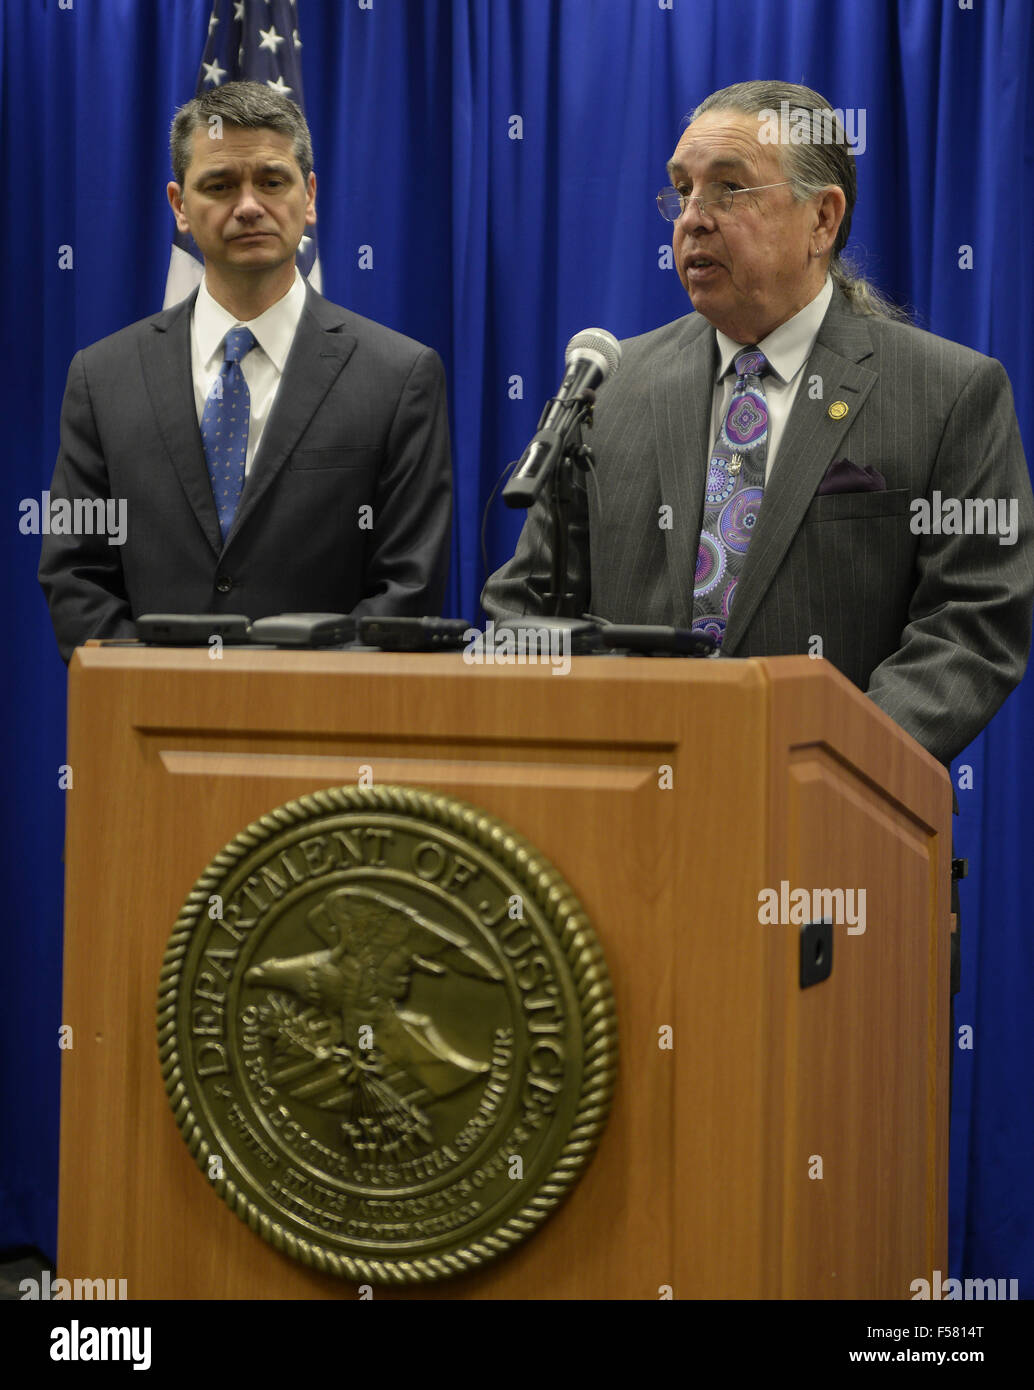 U S Attorney Damon Martinez Left Listens As Chairman Of The Indian Arts And Crafts Board Harvey Pratt Speaks At A Press Conference To Announce The